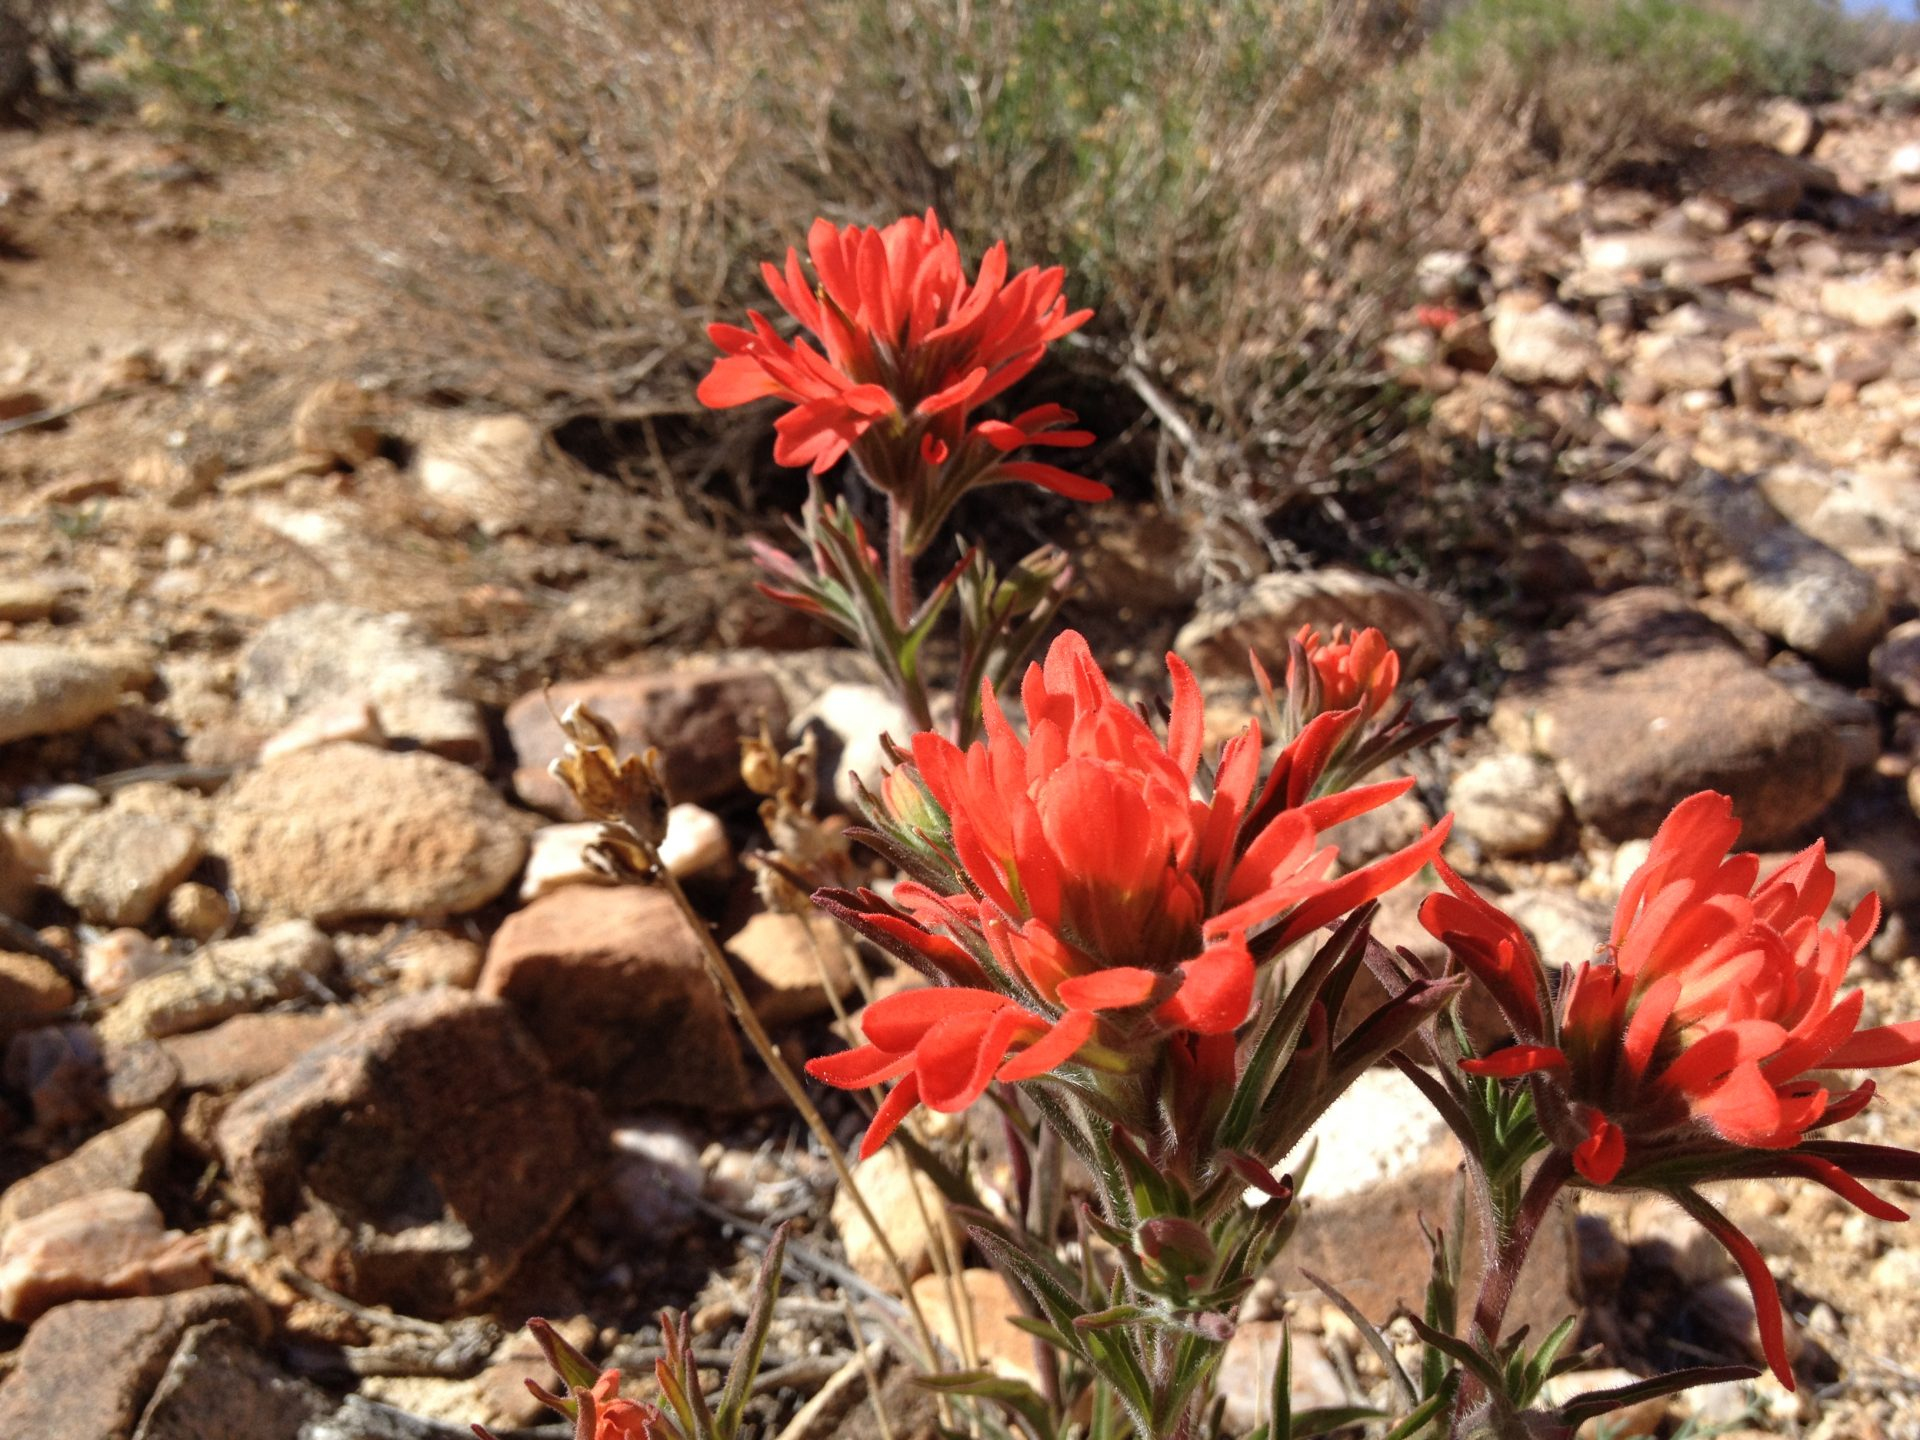 Paintbrush wildflower in the Mojave Desert, Joshua Tree National Park